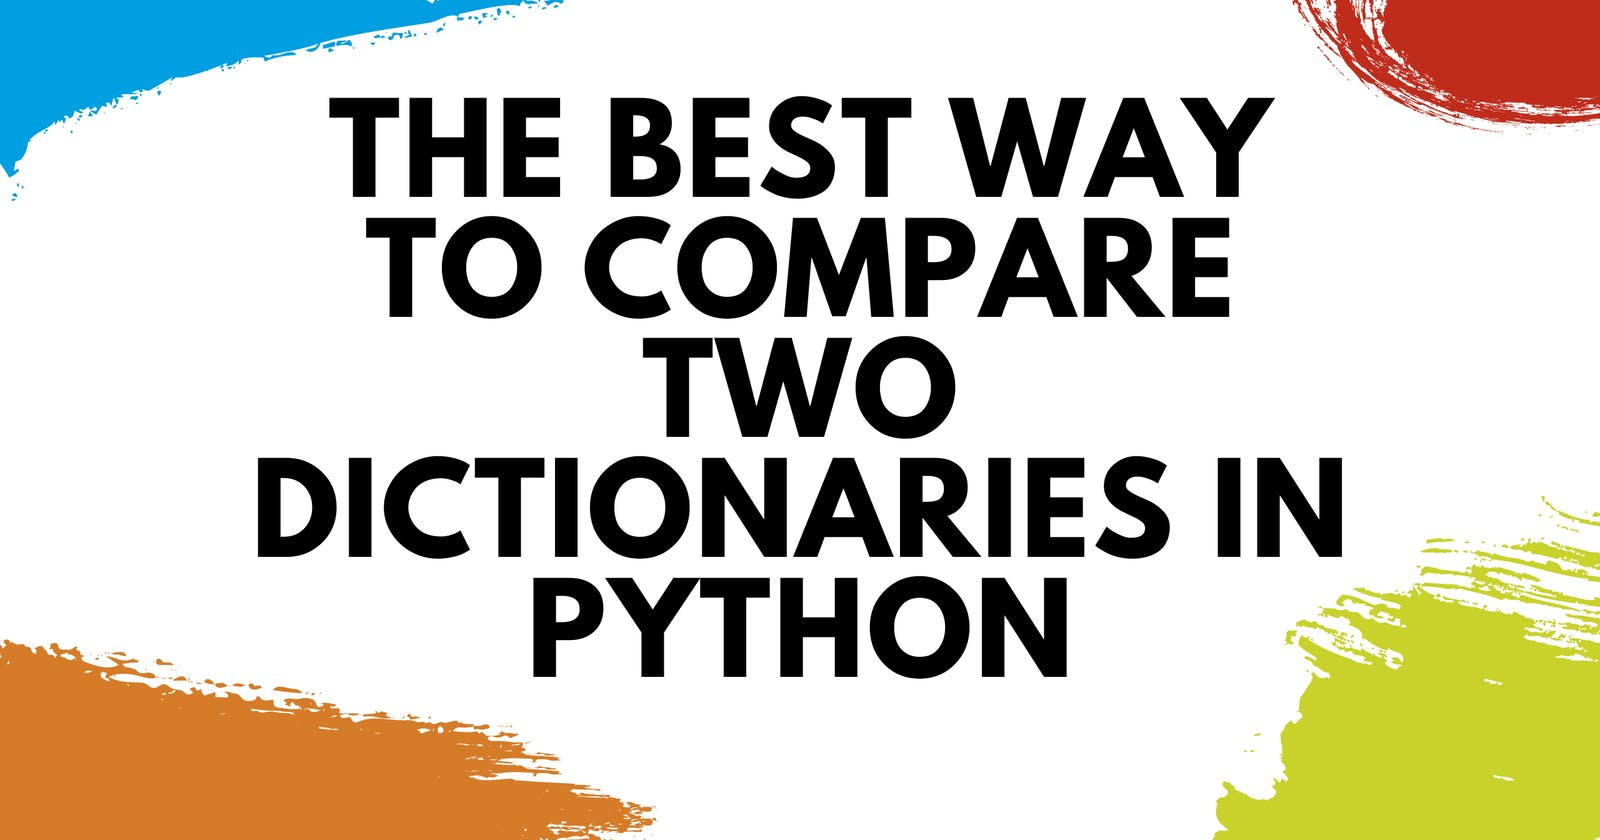 The Best Way to Compare Two Dictionaries in Python